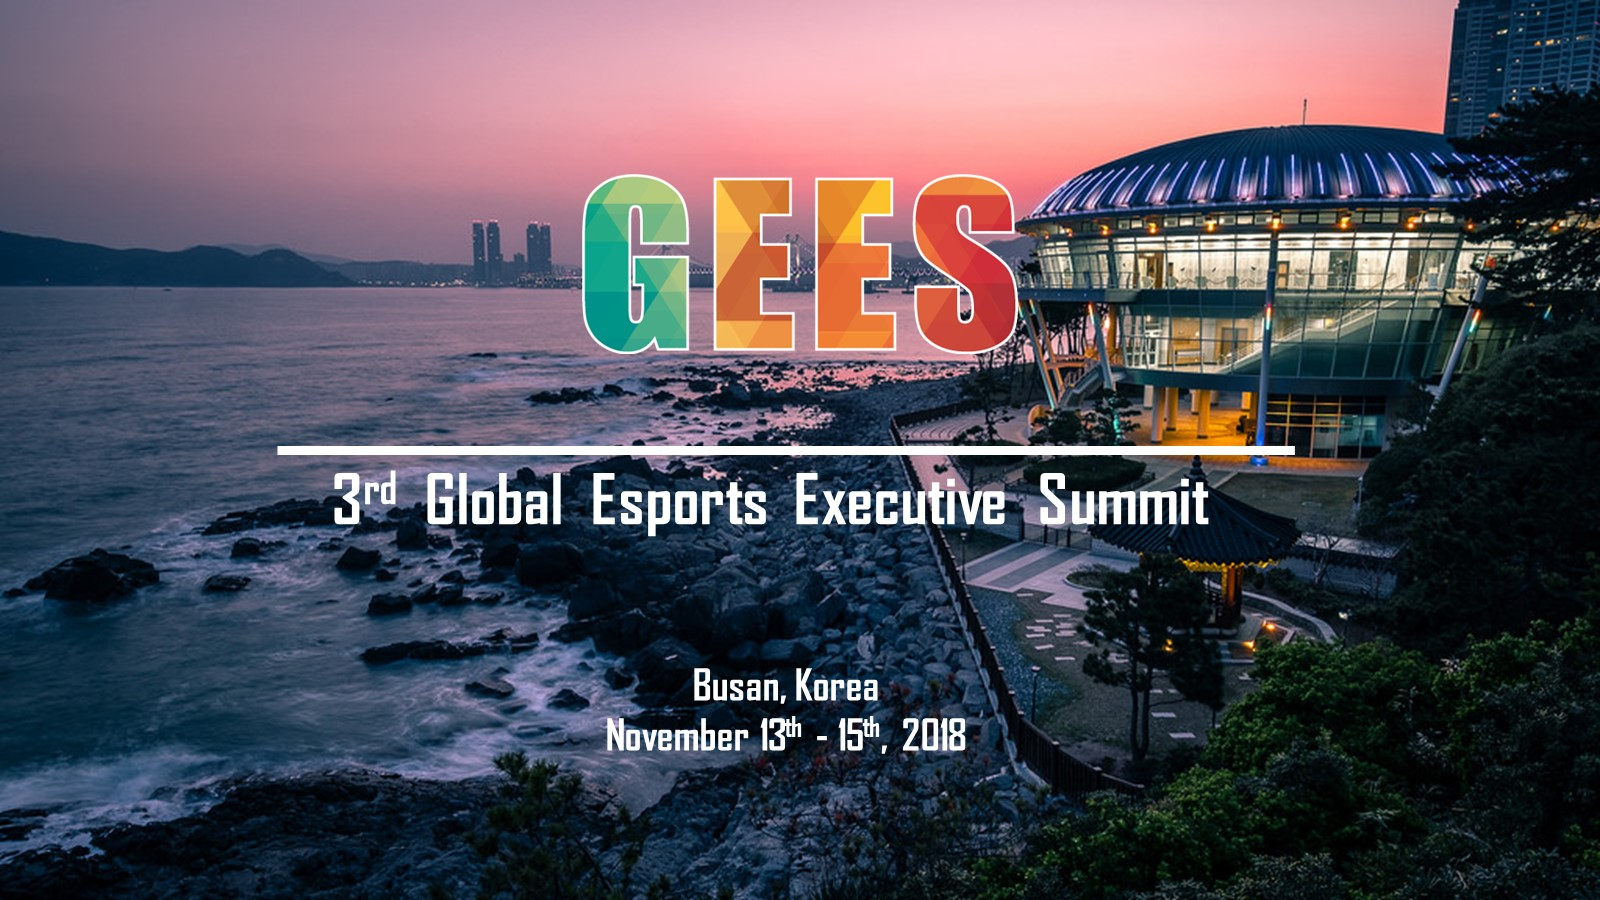 Global Esports Executive Summit 2018